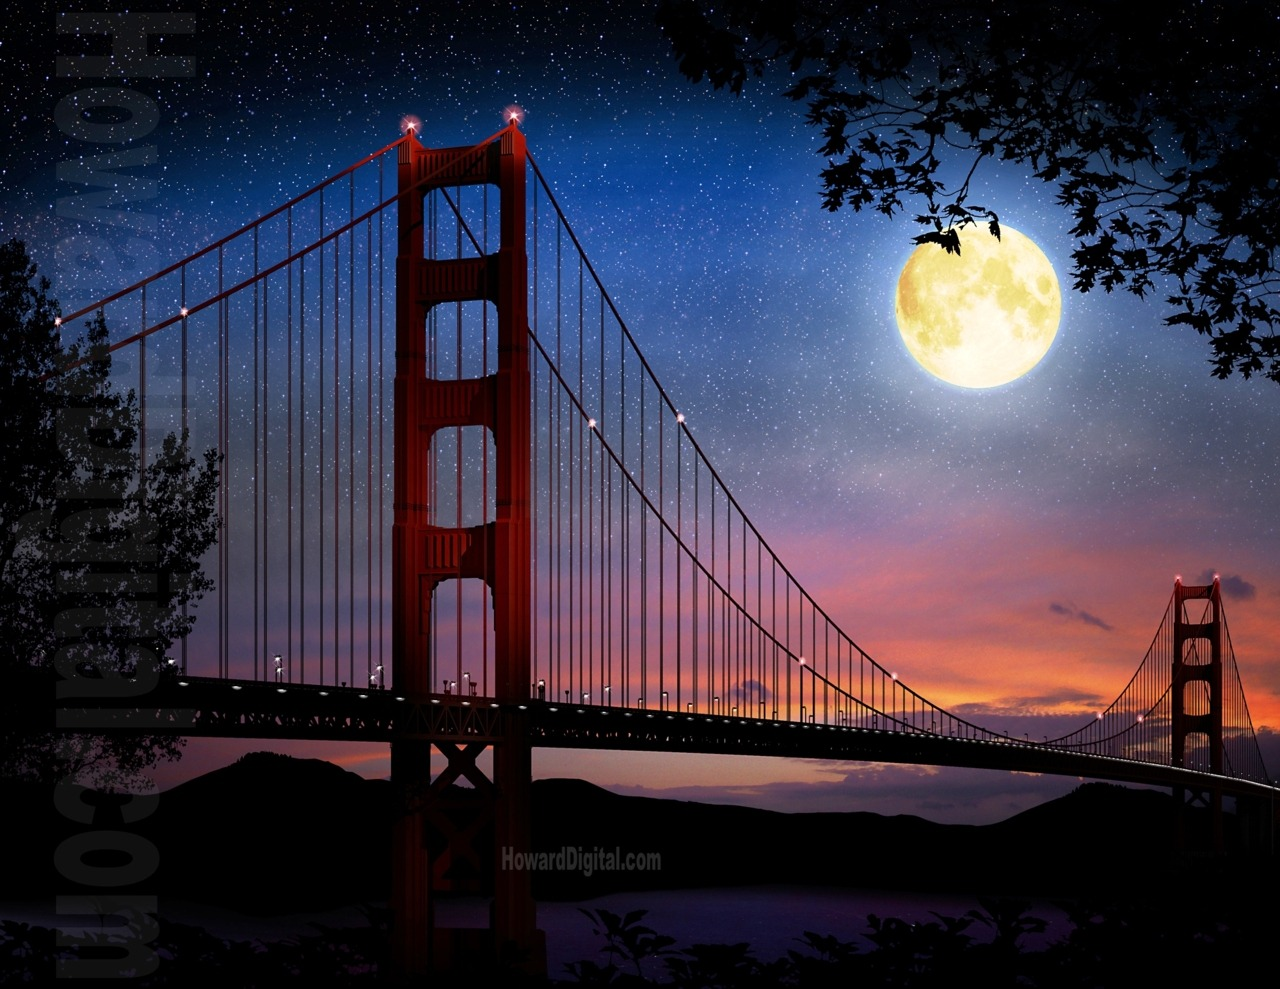 Imaginary Wallpapers Hd Archer S Quill Golden Gate Bridge At Night Full Moon